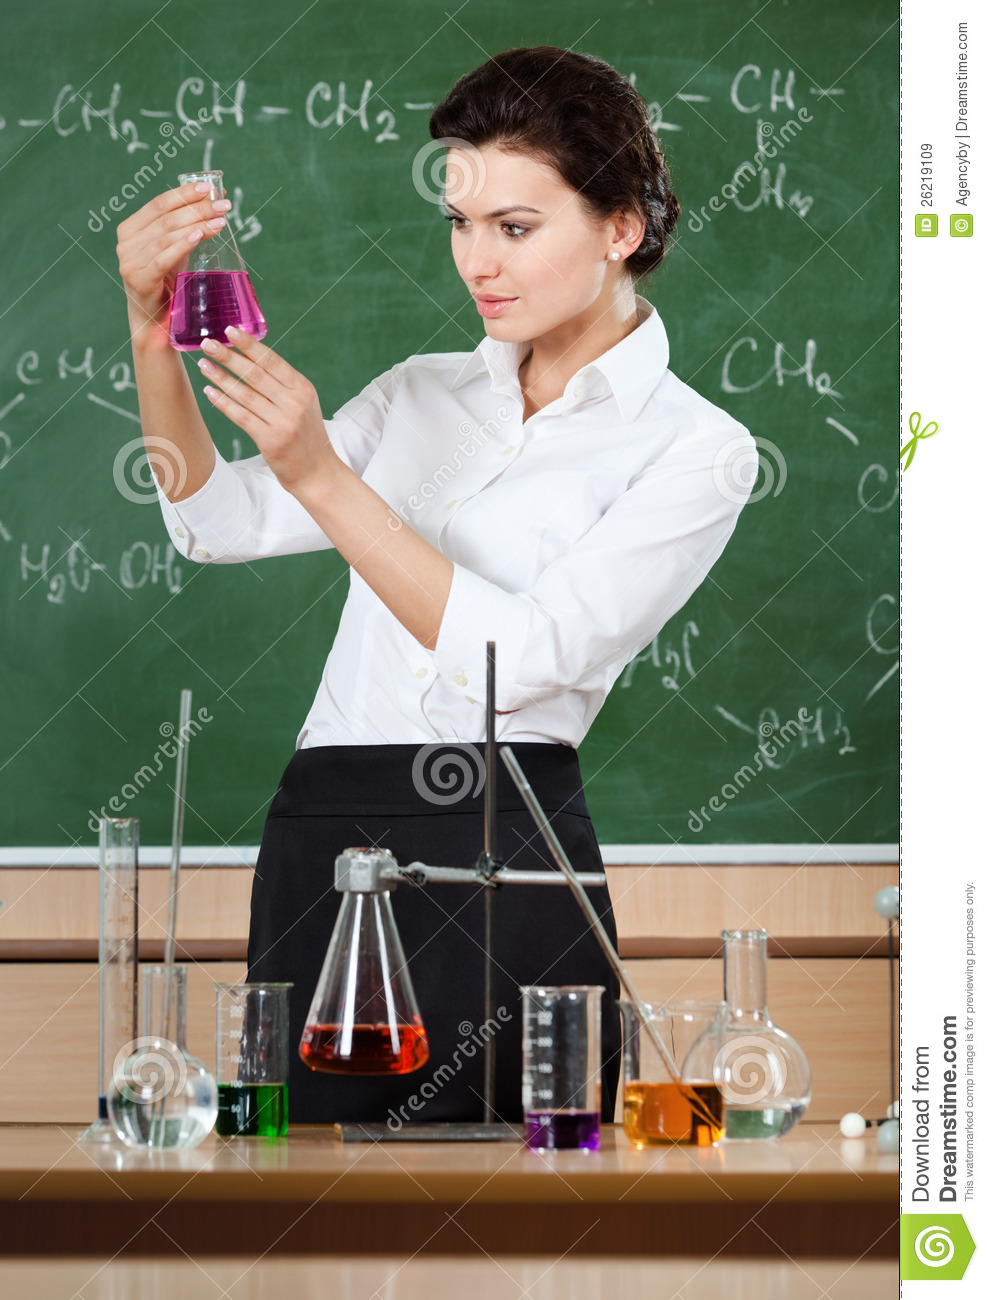 Smiley Chemistry Teacher Examines Conical Flask Royalty Free Stock ...